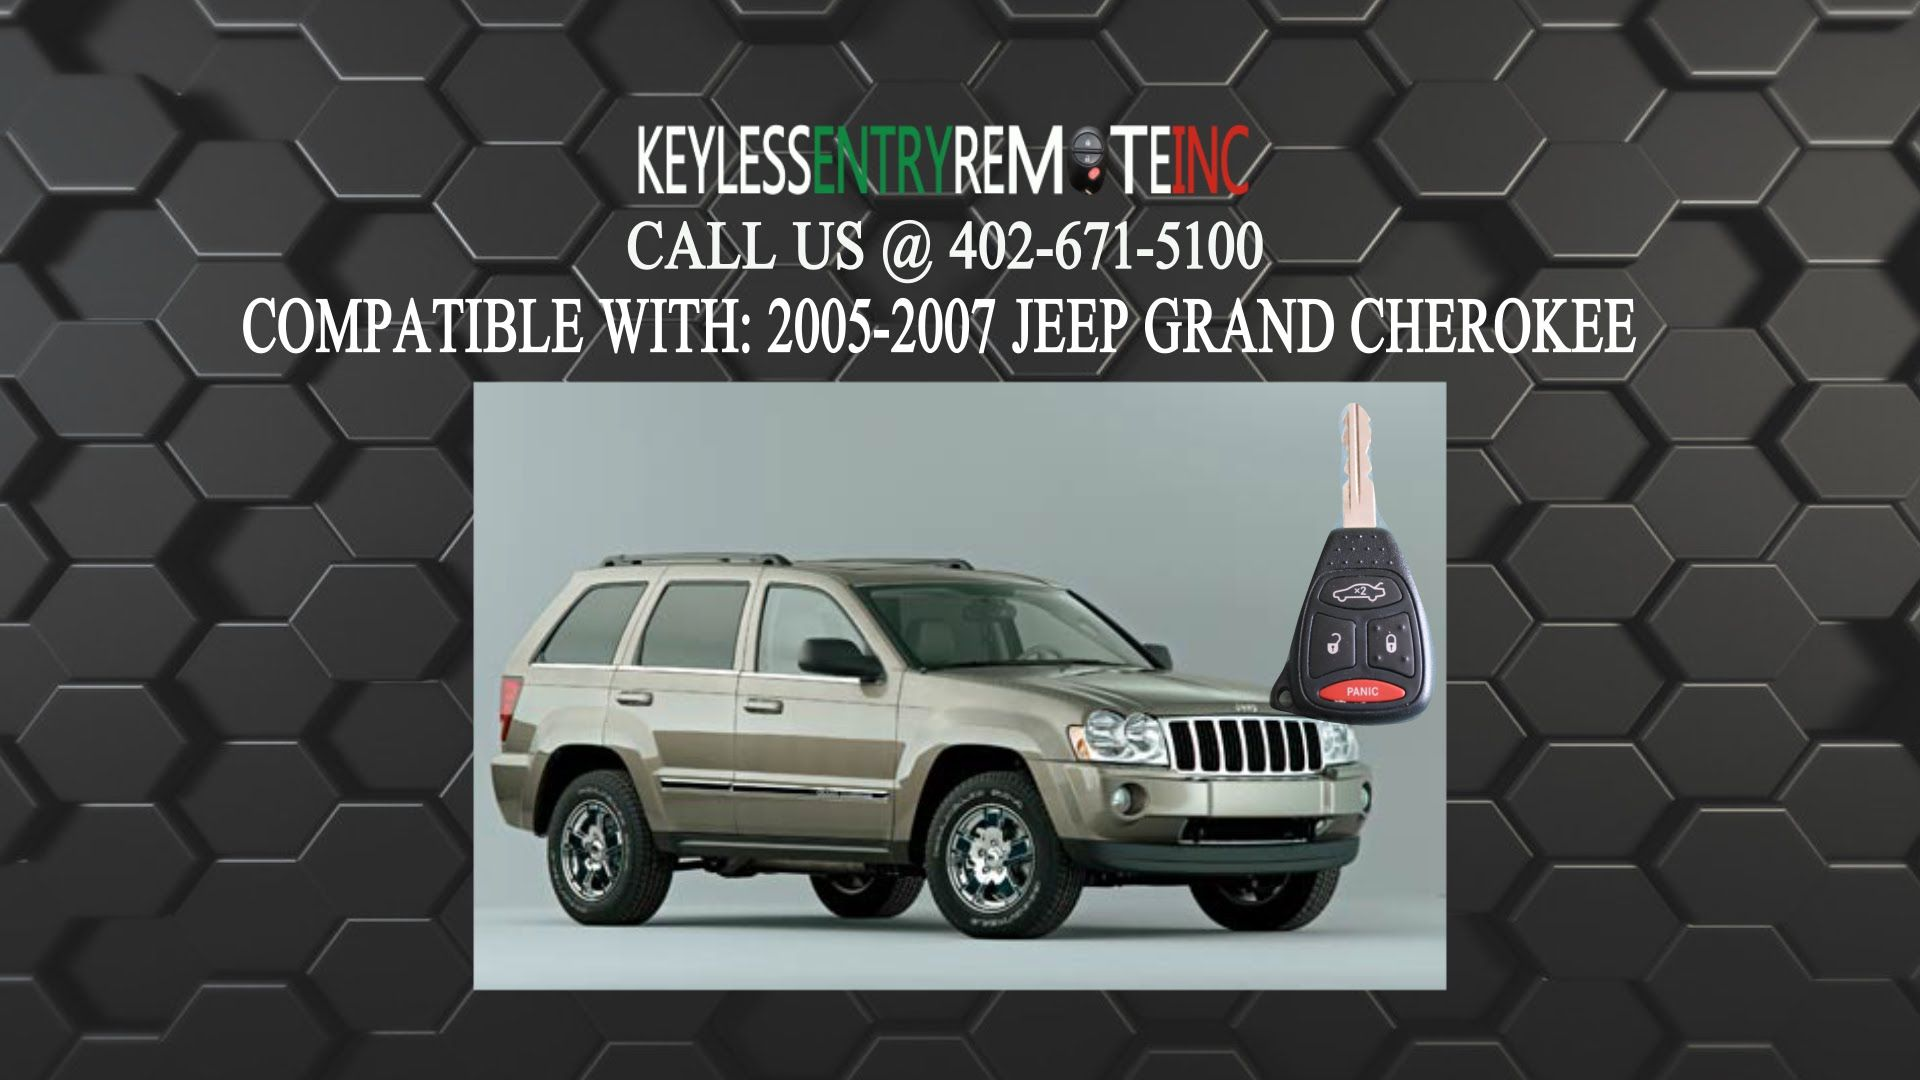 How To Replace Jeep Grand Cherokee Key Fob Battery 2005 2007 Jeep Grand Cherokee Jeep 2005 Jeep Grand Cherokee